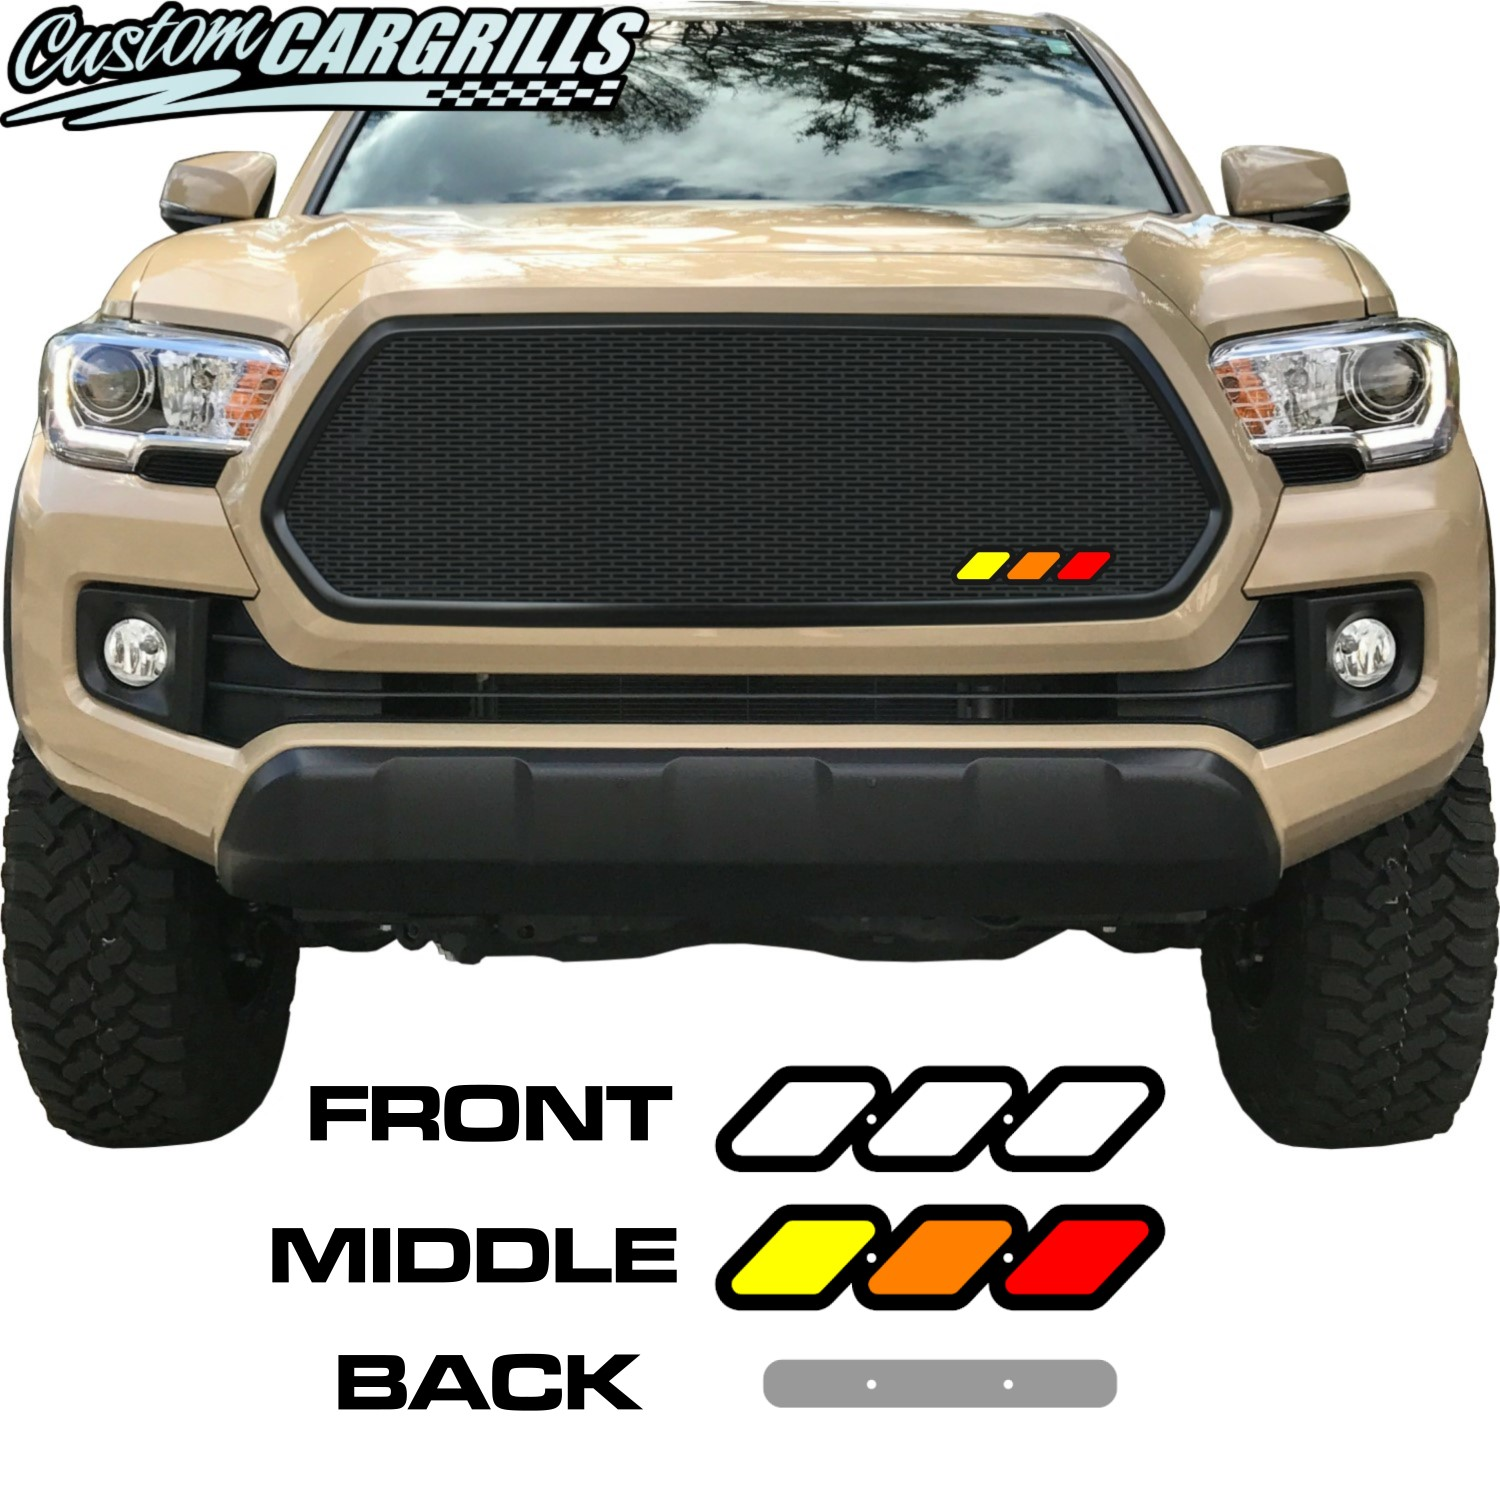 1.75in x 7in Tri-Color Emblem for Toyota Grilles